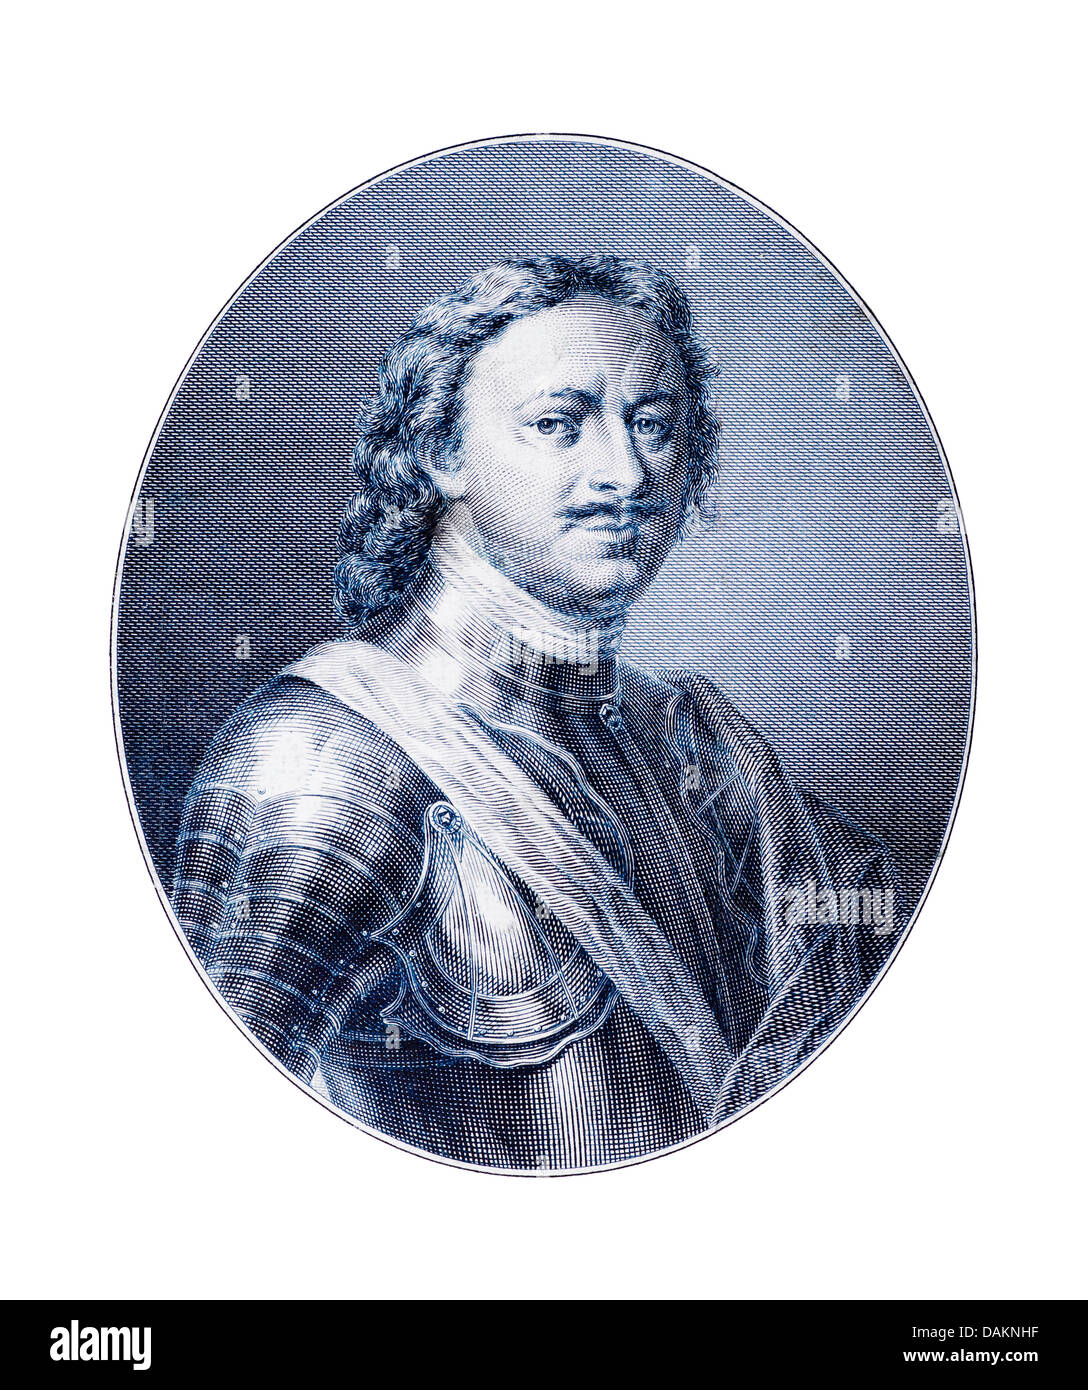 Engraving of Peter I (the Great) Emperor of Russia (1682-1725). - Stock Image